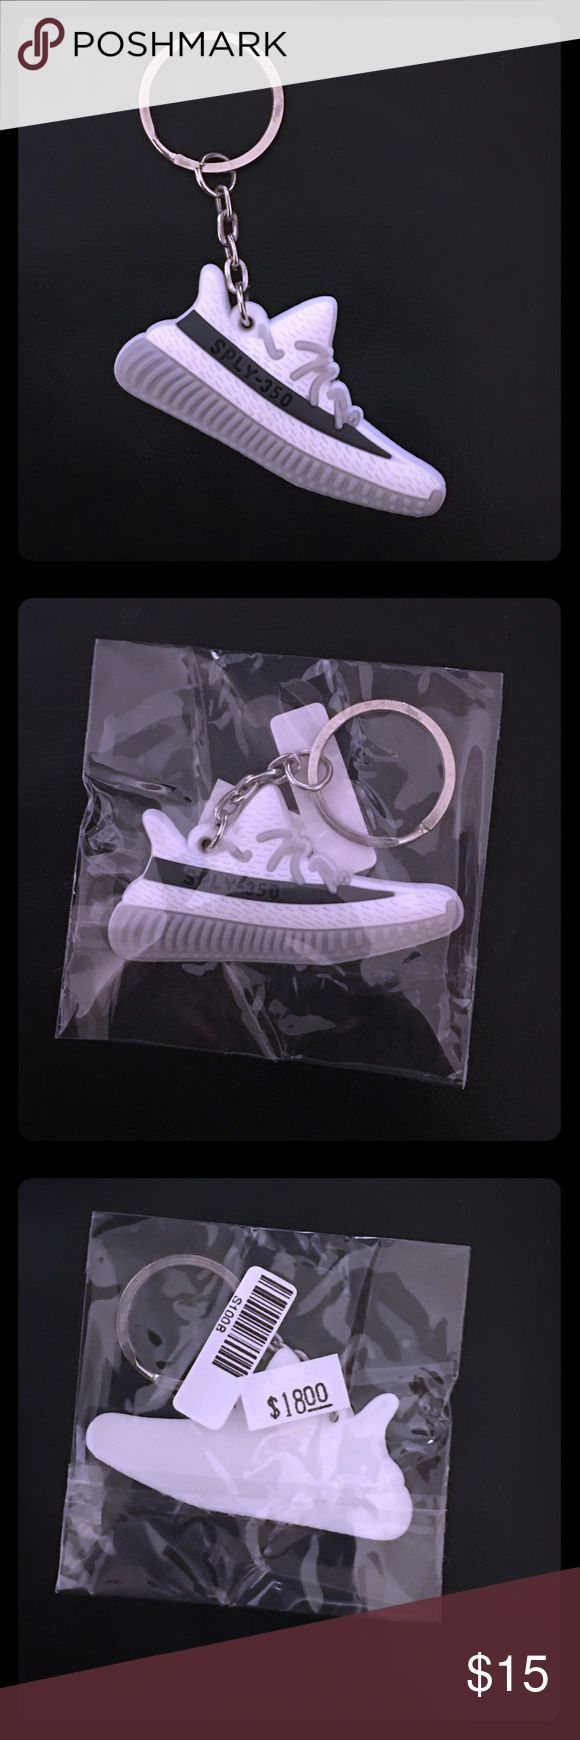 Adidas Yeezy Boost 350 Keychain Mini silicone Adidas Yeezy Boost 350 V2 Keychain. Color way: white/ charcoal/ lt. gray. New in package. 😎 Accessories Key & Card Holders